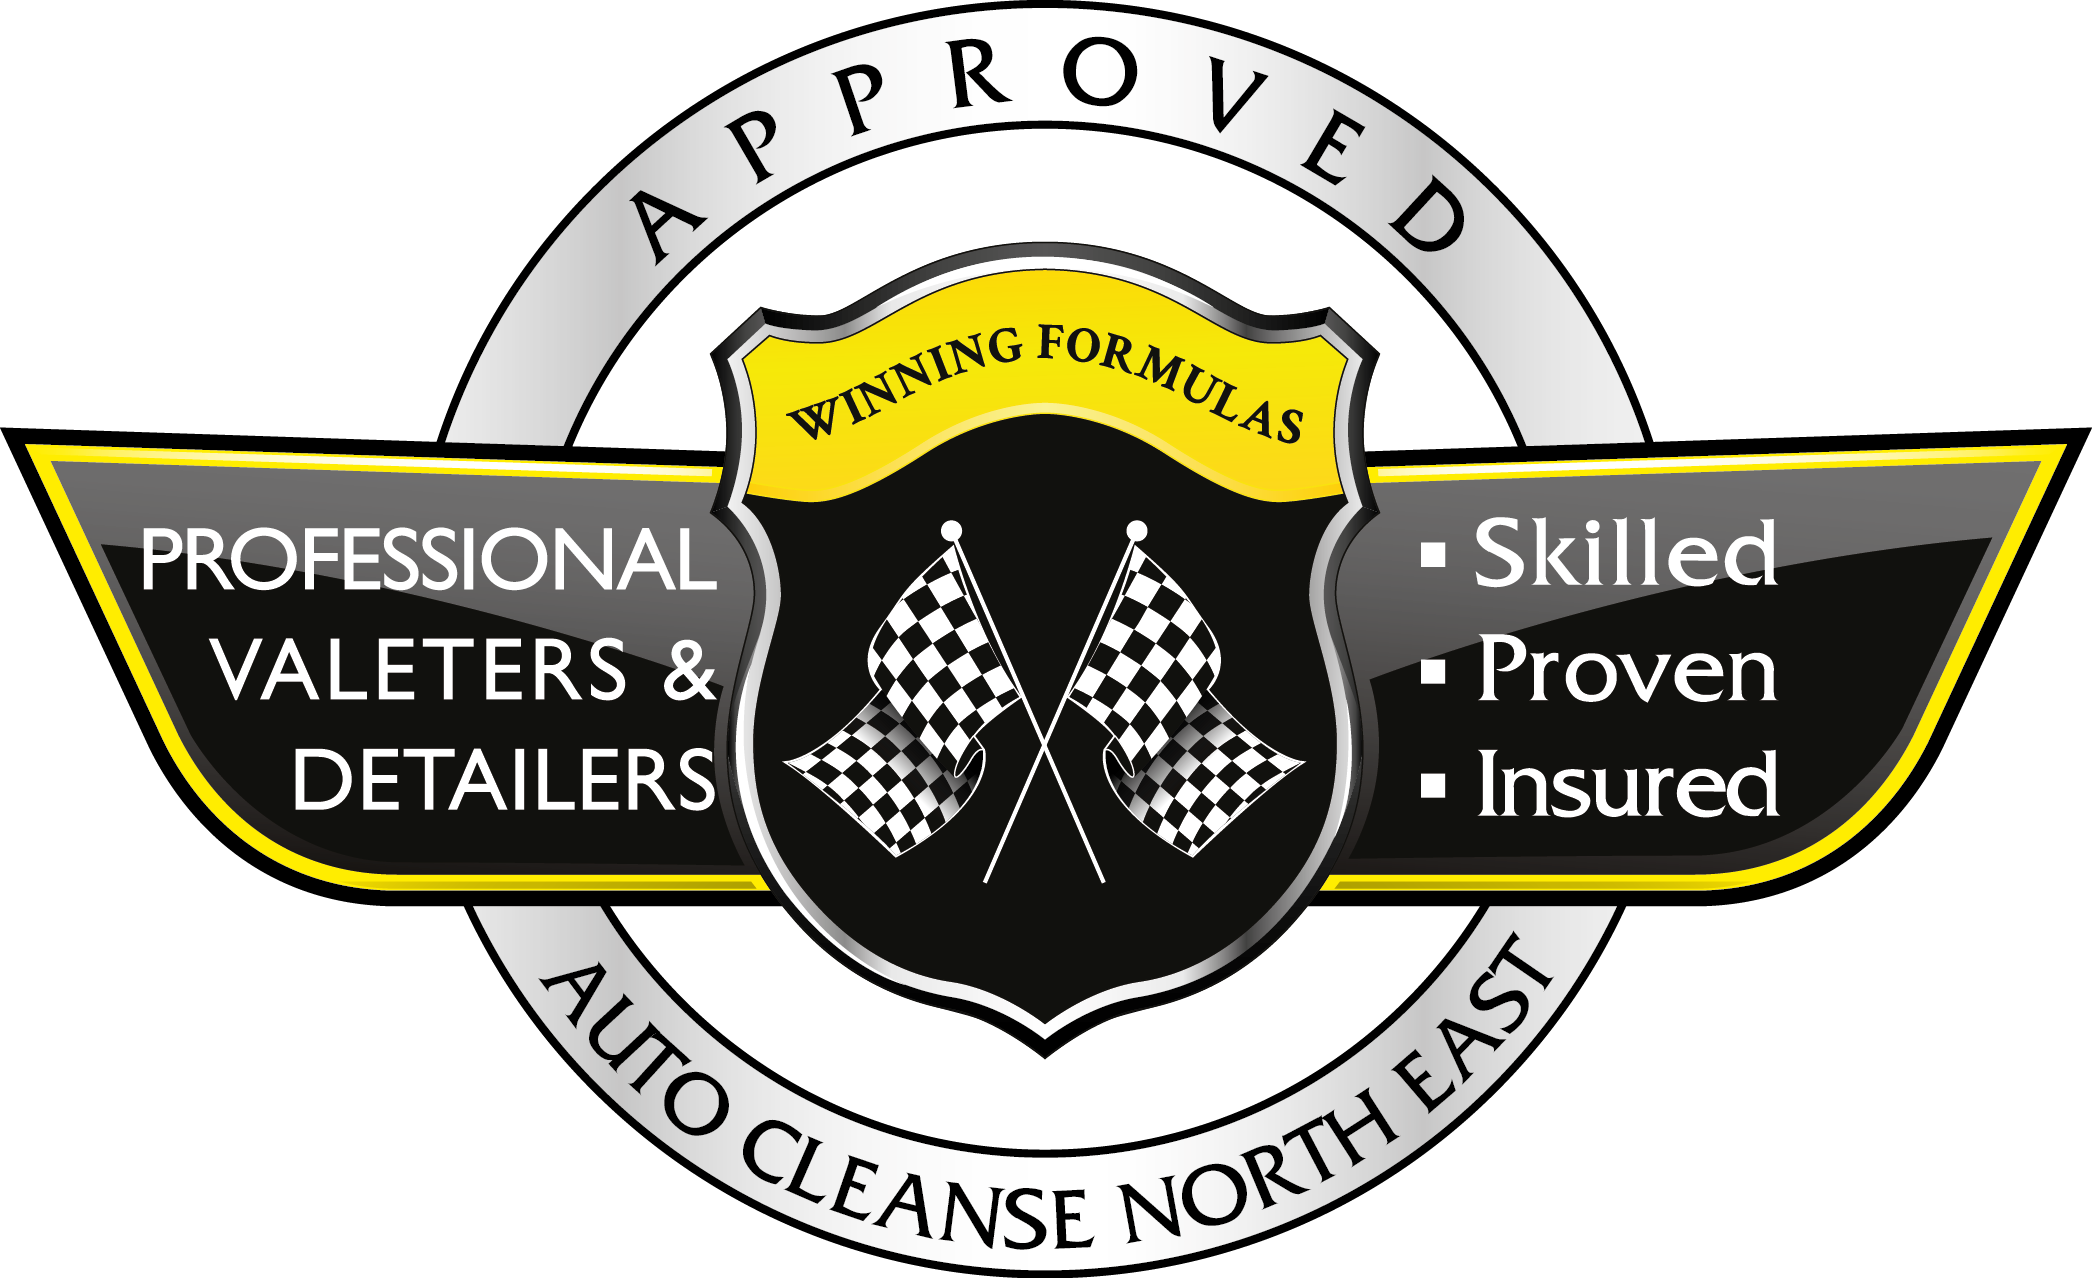 Approved Member of the winning directory of valeters and detailers.